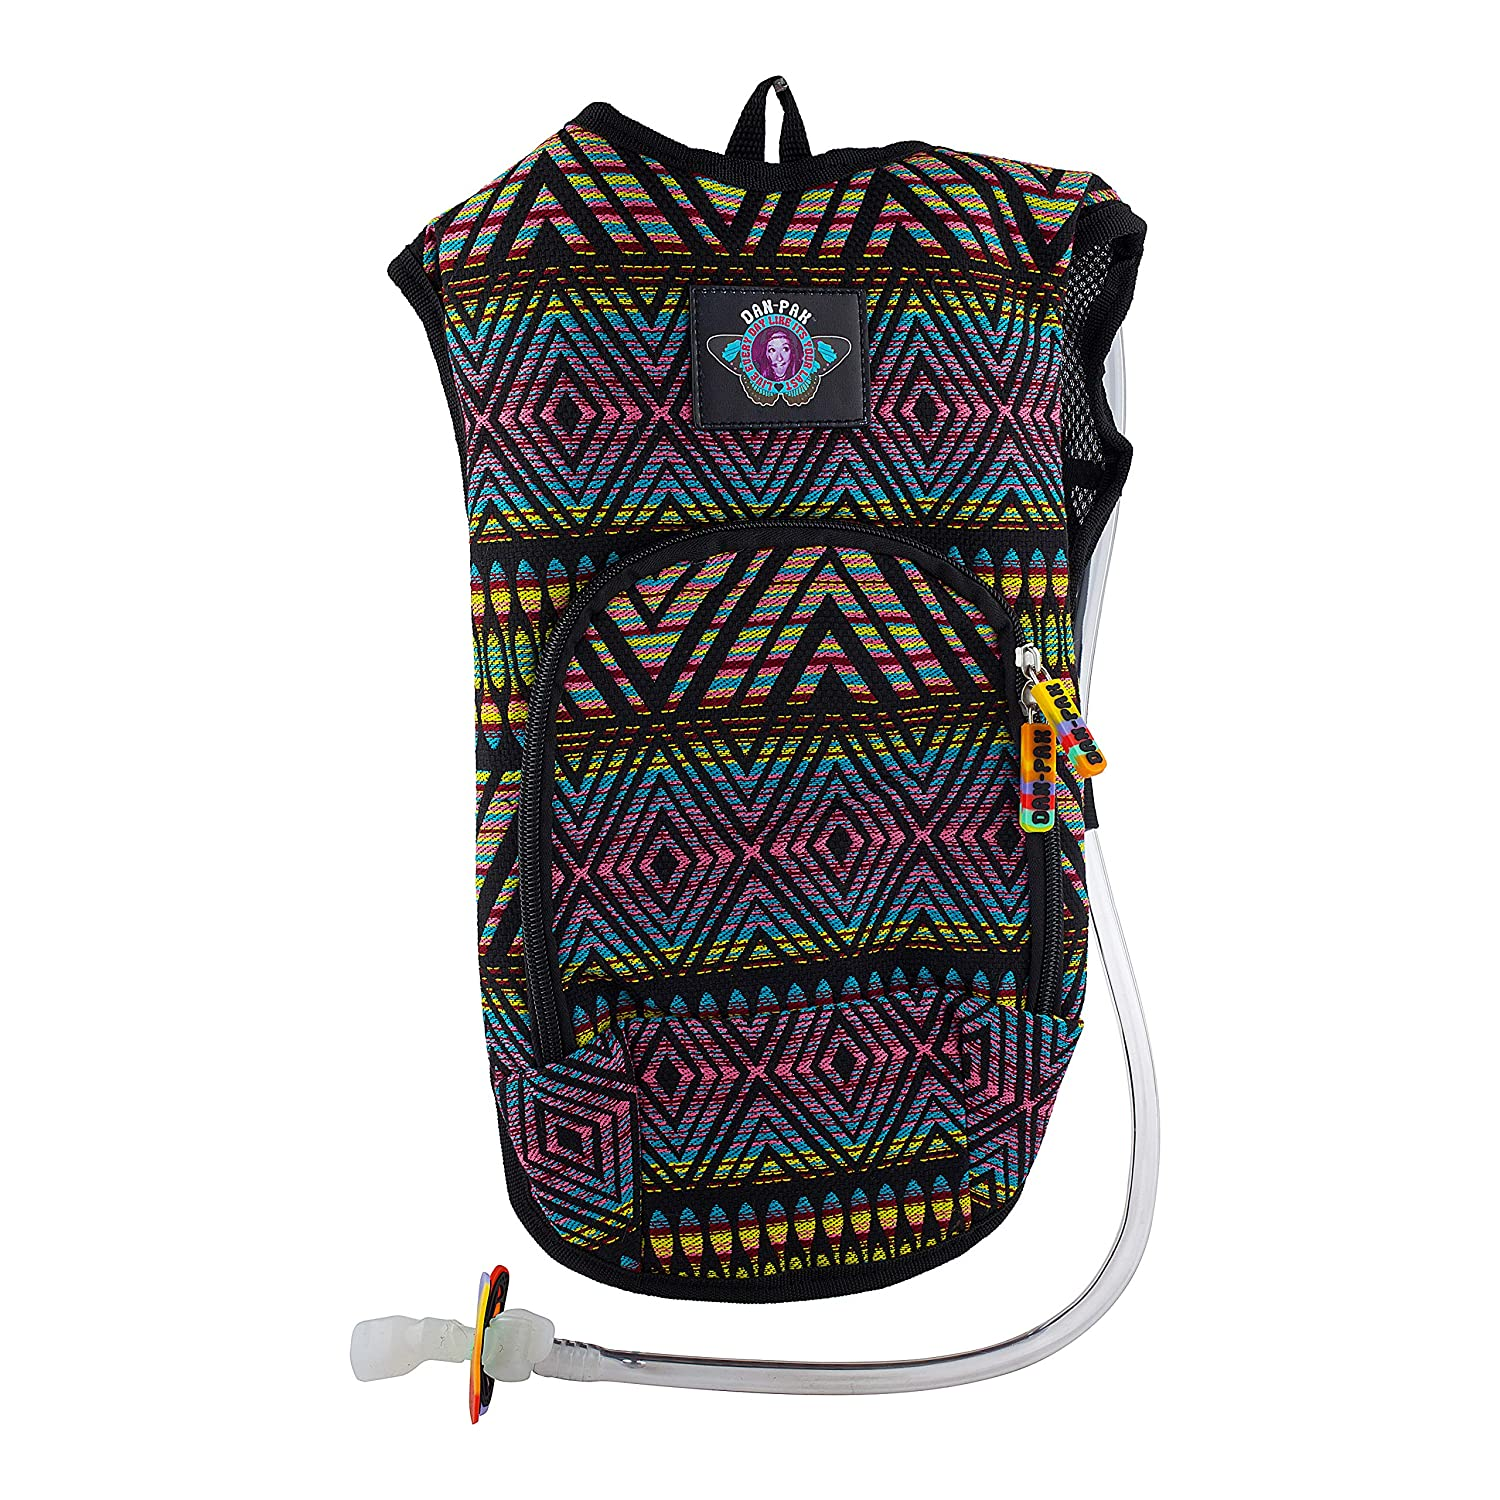 Dan-Pak Rave Hydration Pack 2l- Neon Tribe -Black and Rainbow Woven Tribal Design – Perfect for Music Festivals and Camping